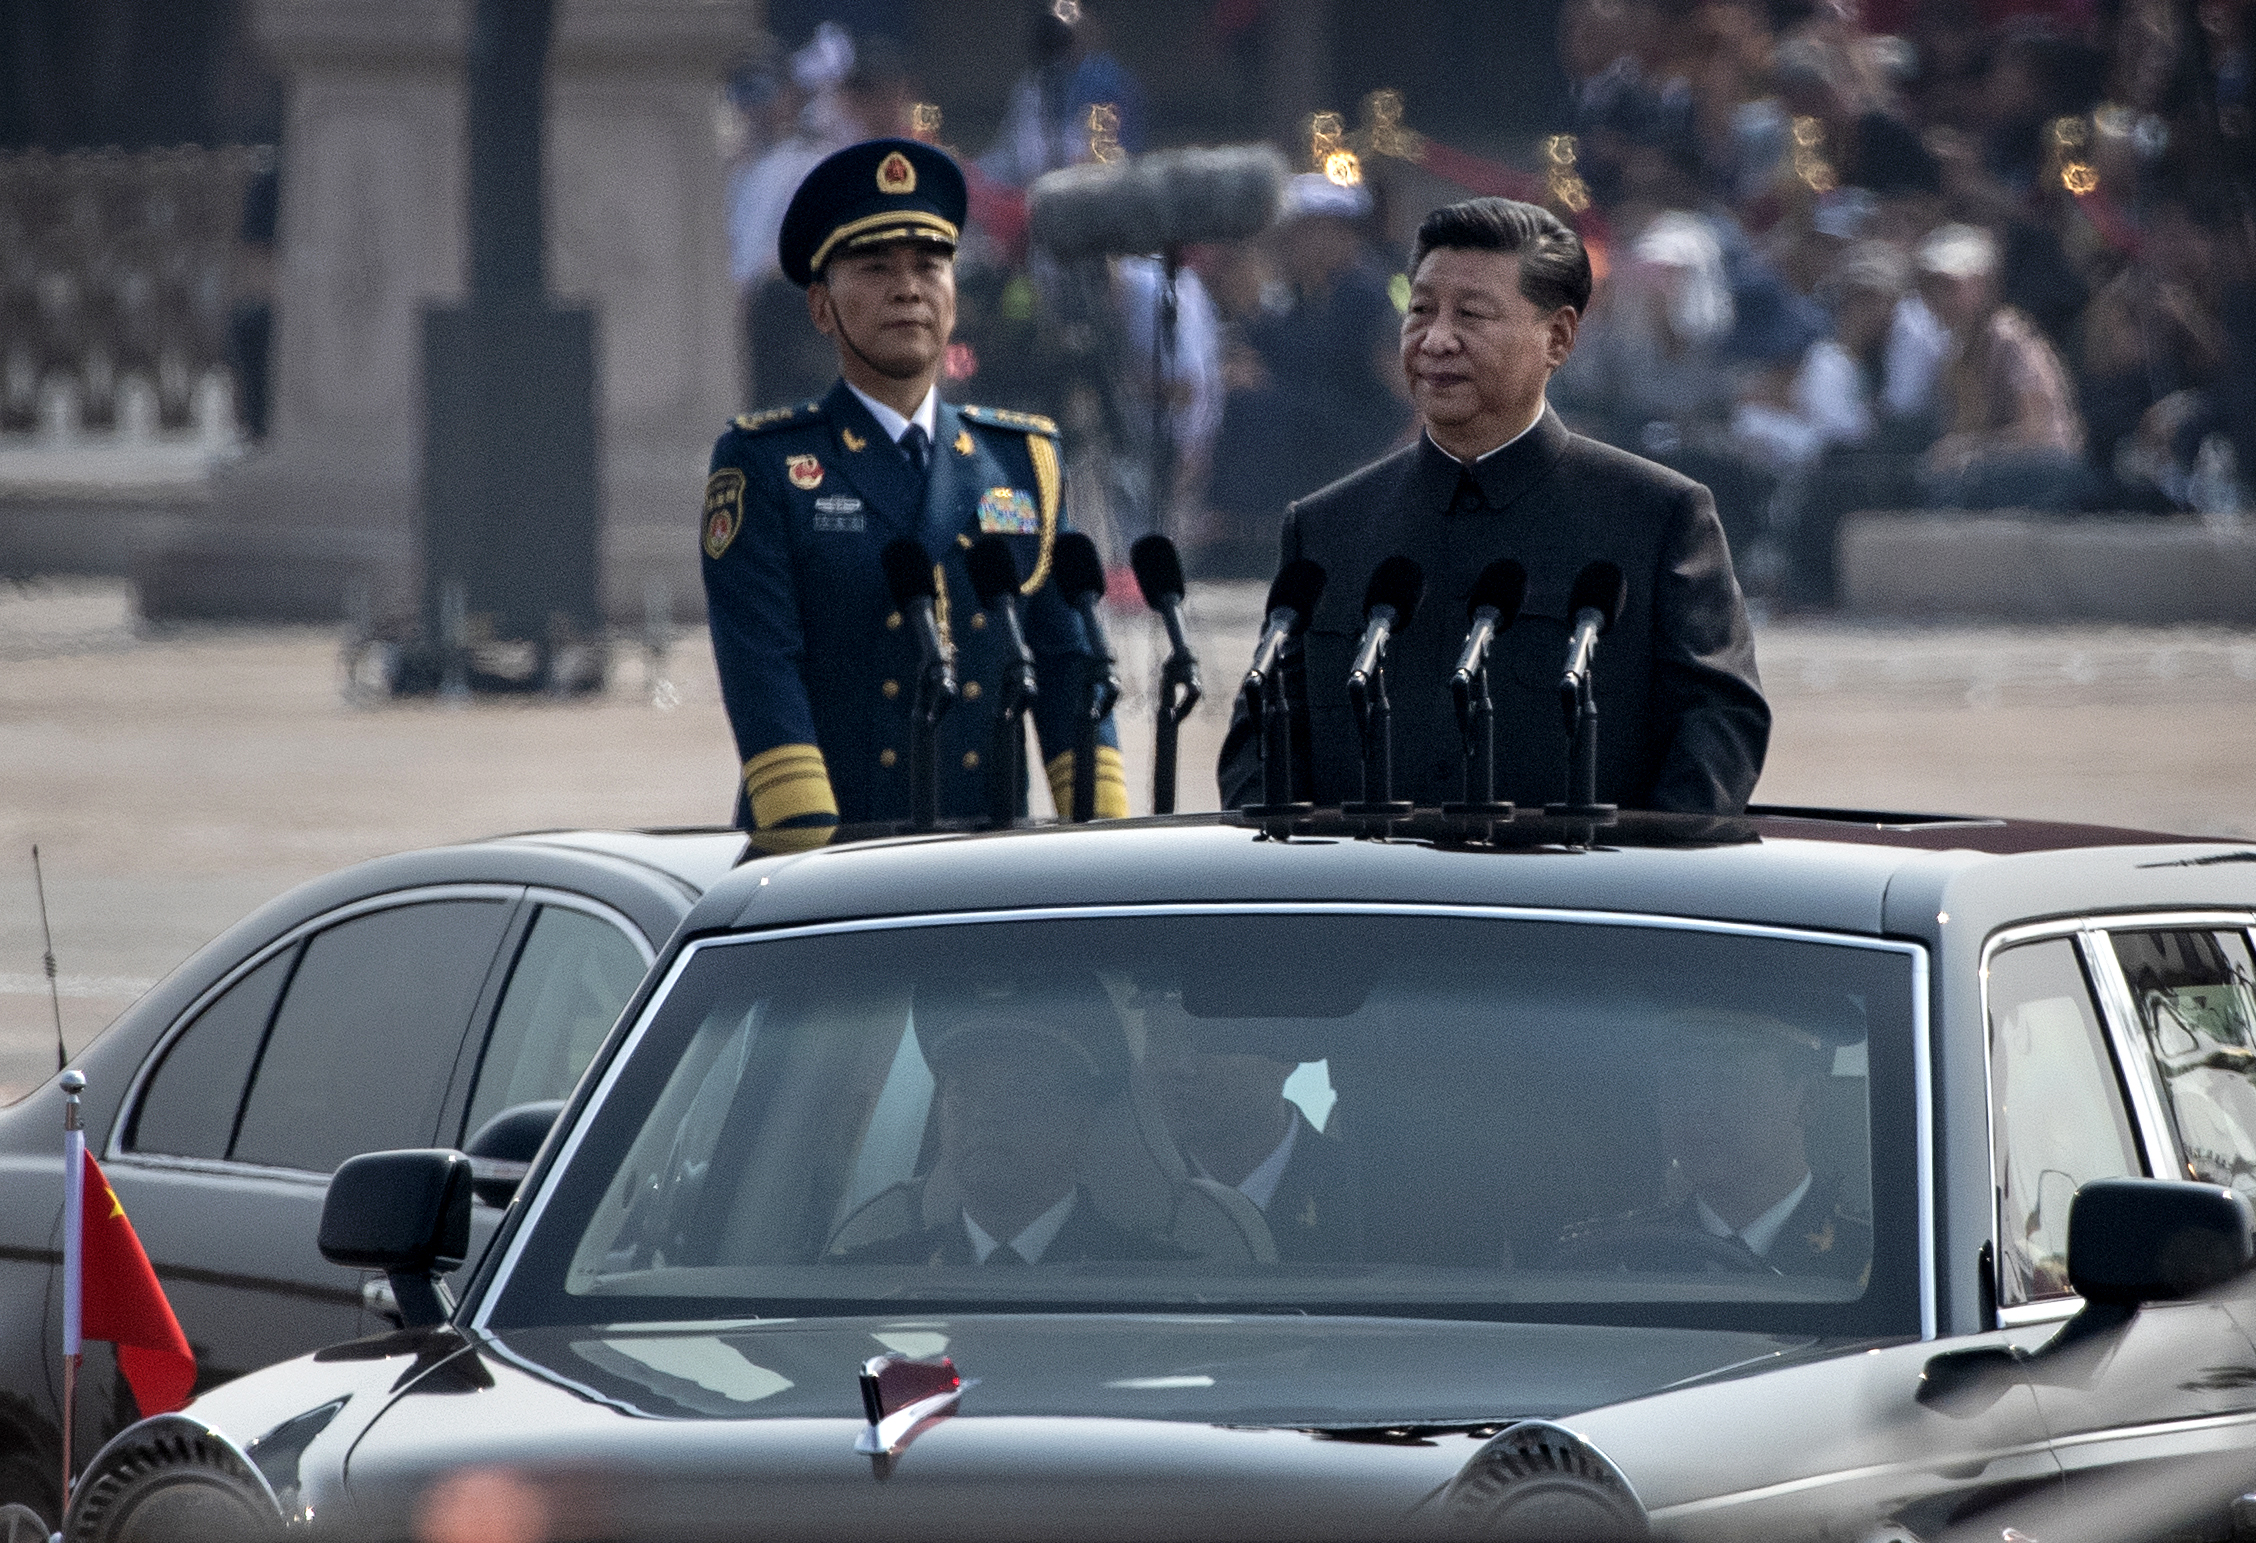 Chinese President Xi Jinping drives in a Hong Qi car after inspecting the troops during a parade to celebrate the 70th anniversary of the founding of the People's Republic of China at Tiananmen Square in 1949, on Oct. 1, 2019, in Beijing, China. (Kevin Frayer/Getty Images)